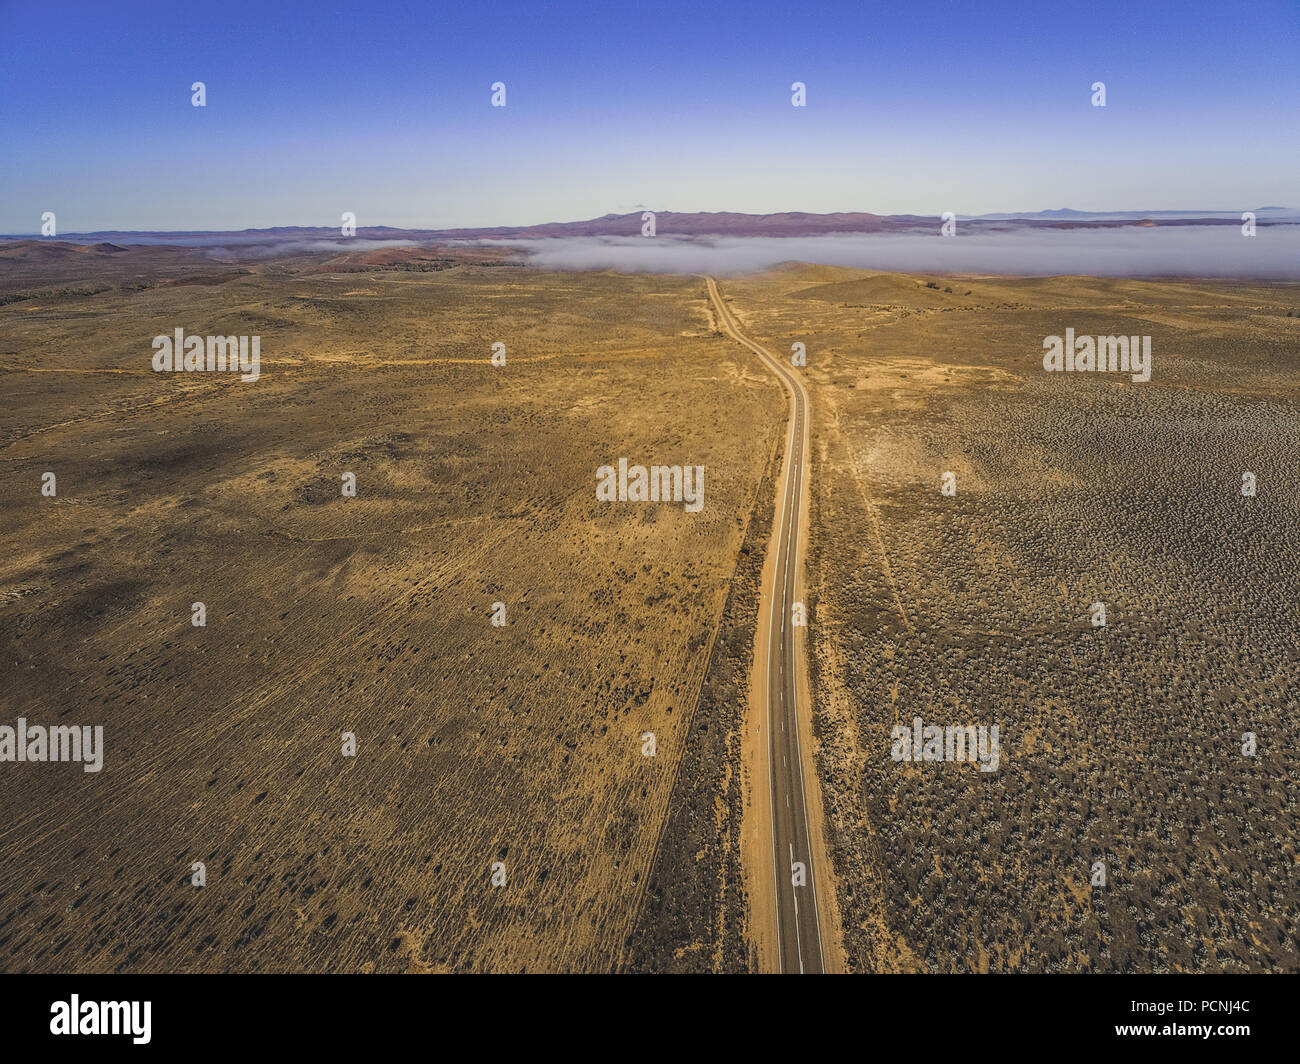 Highway passing through Australian outback desert leading to mountains under low cloud - aerial view - Stock Image